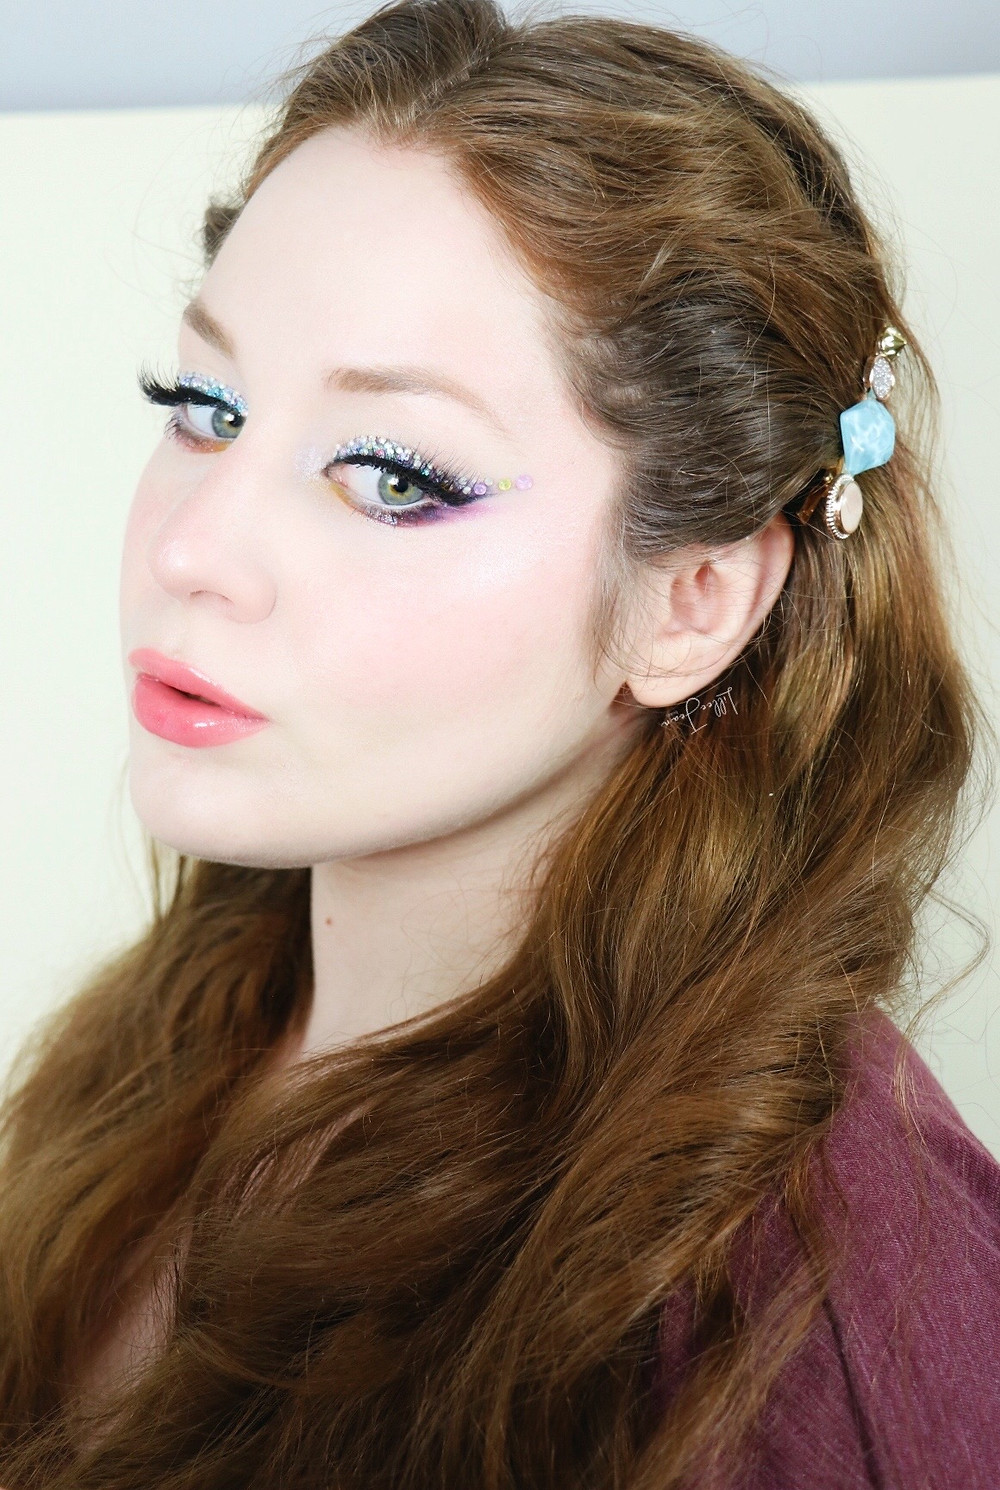 L.A. Girl Desert Dream Colorful RHINESTONE Makeup Tutorial 2021 | Lillee Jean